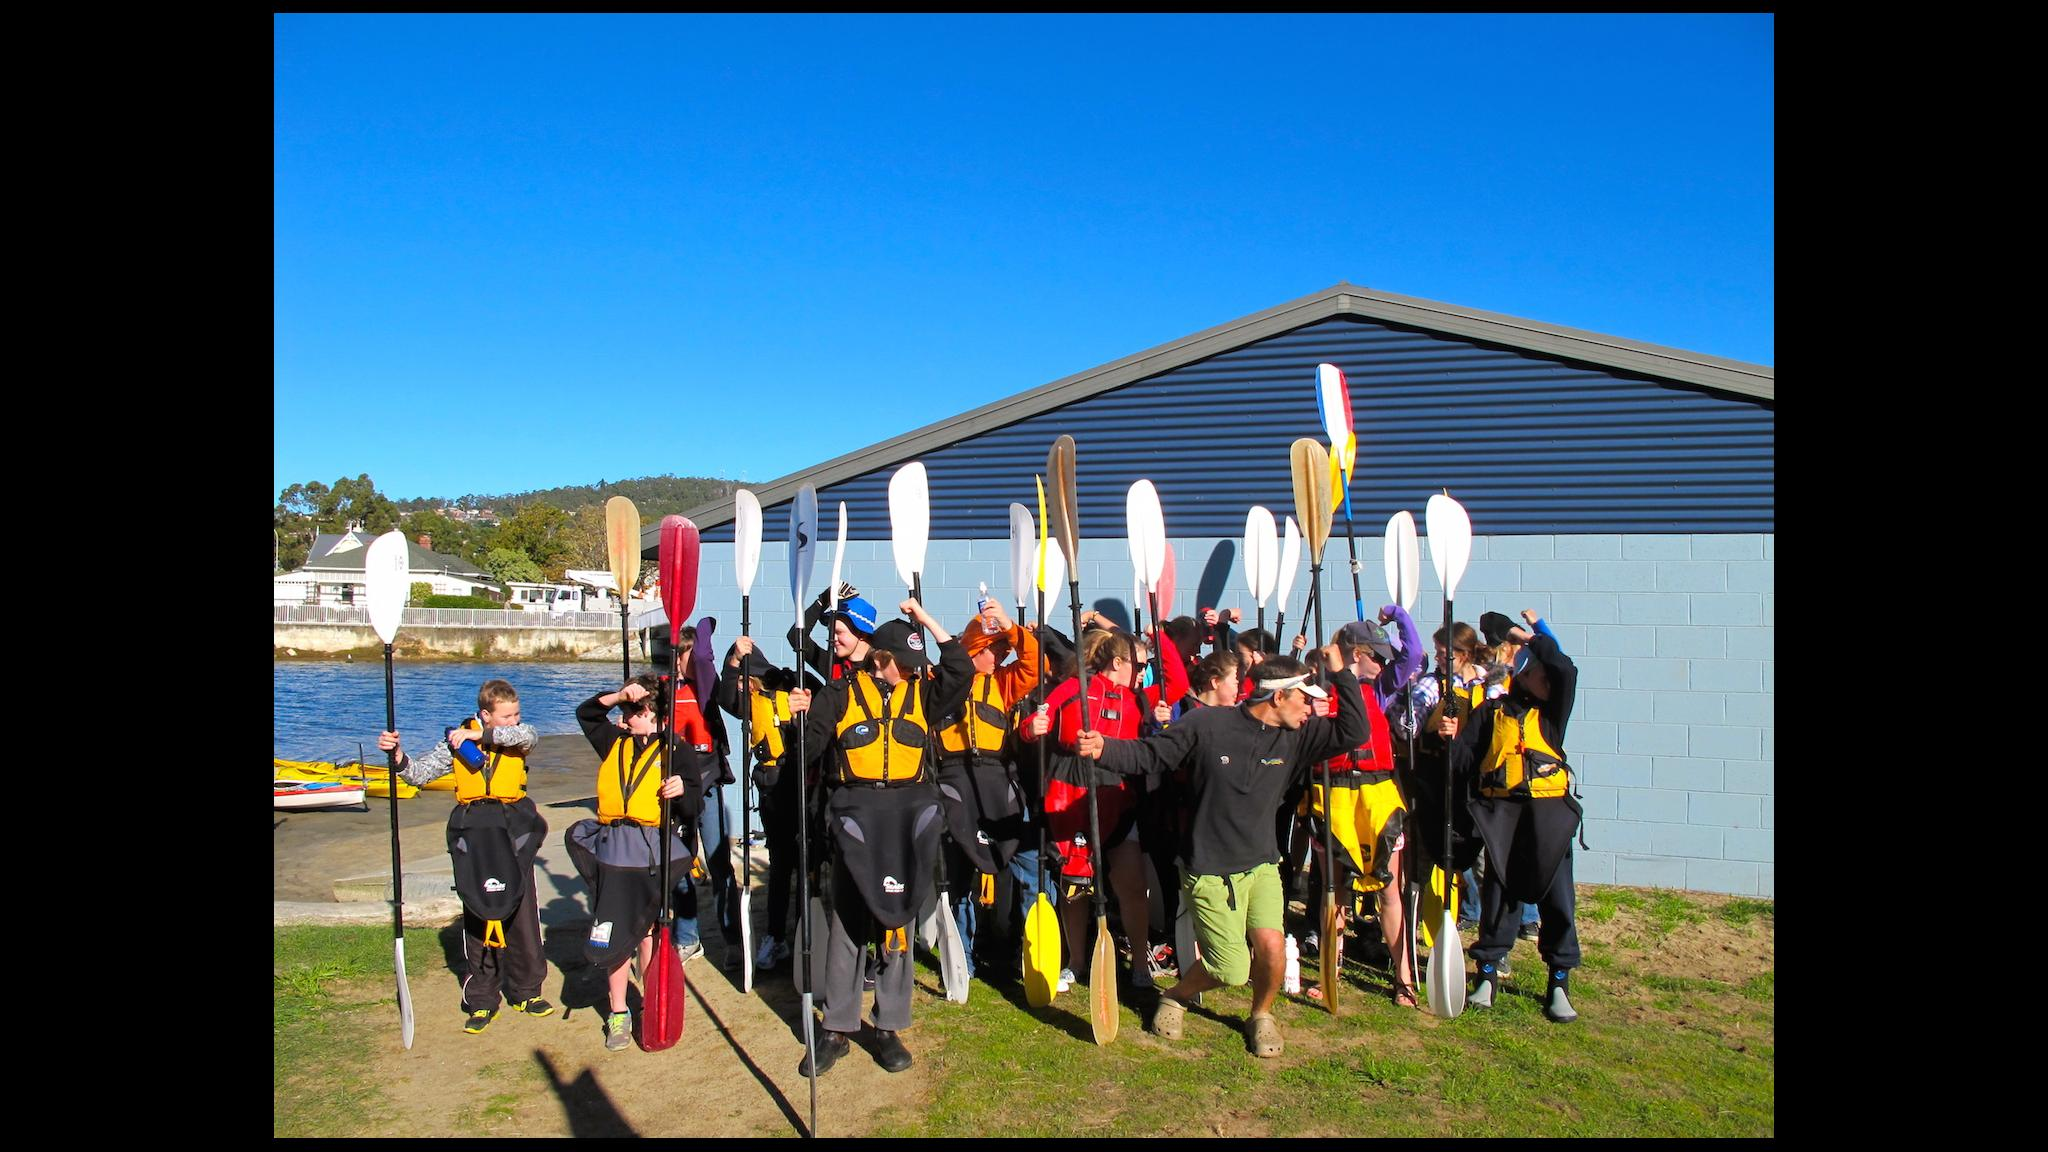 Roaring 40ºs Kayaking - Large school group kayaking in Hobart, Tasmania